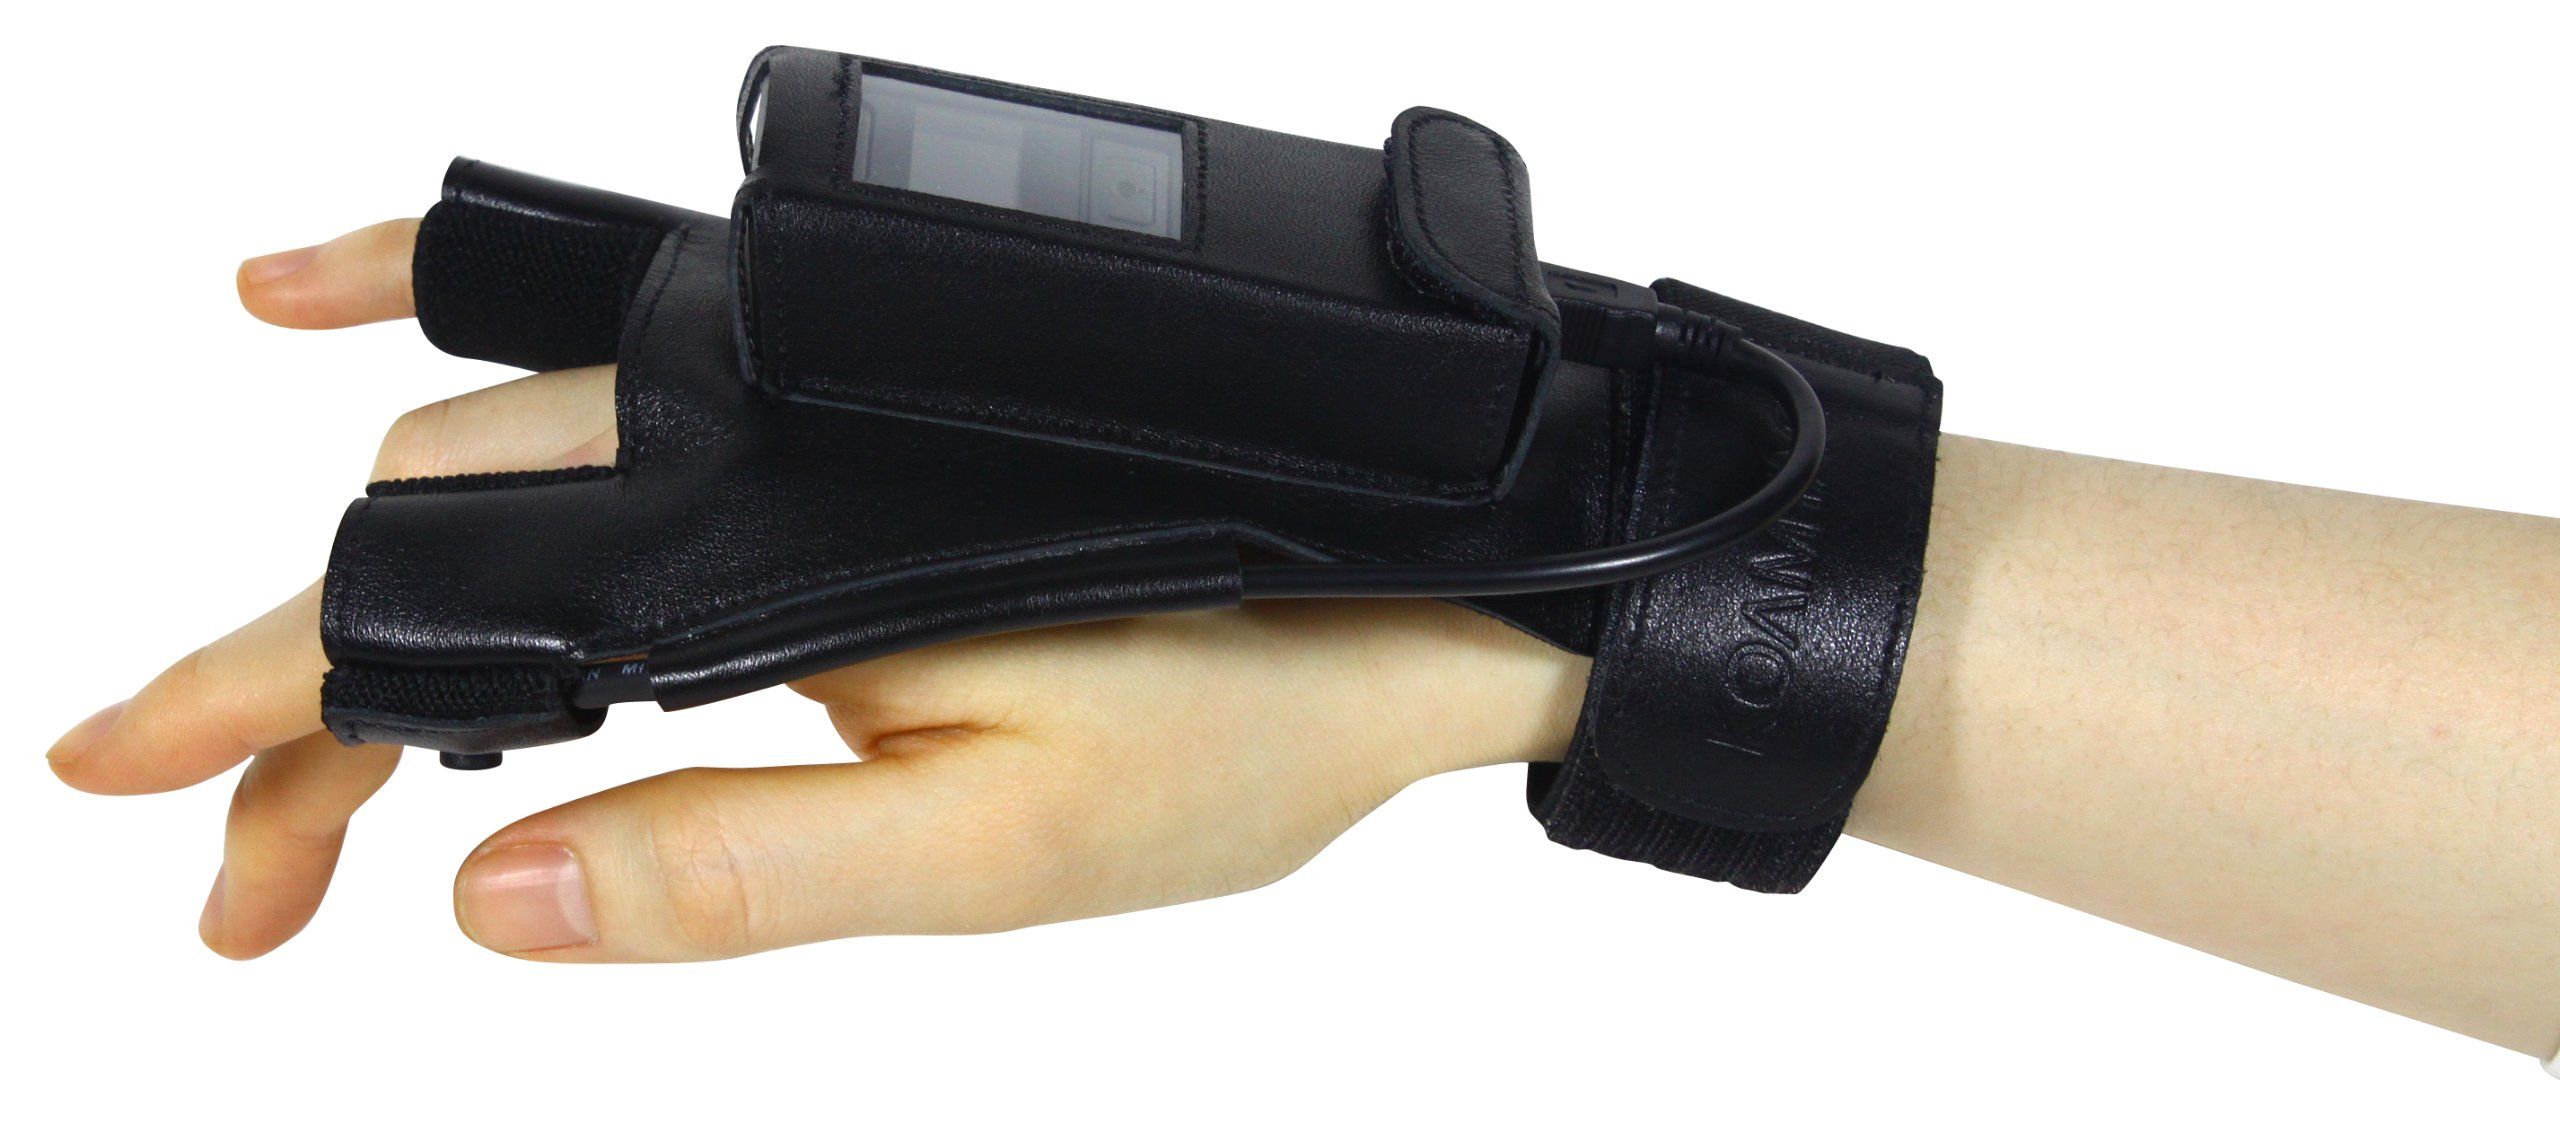 KDC350 Finger Trigger Glove Right Large Size